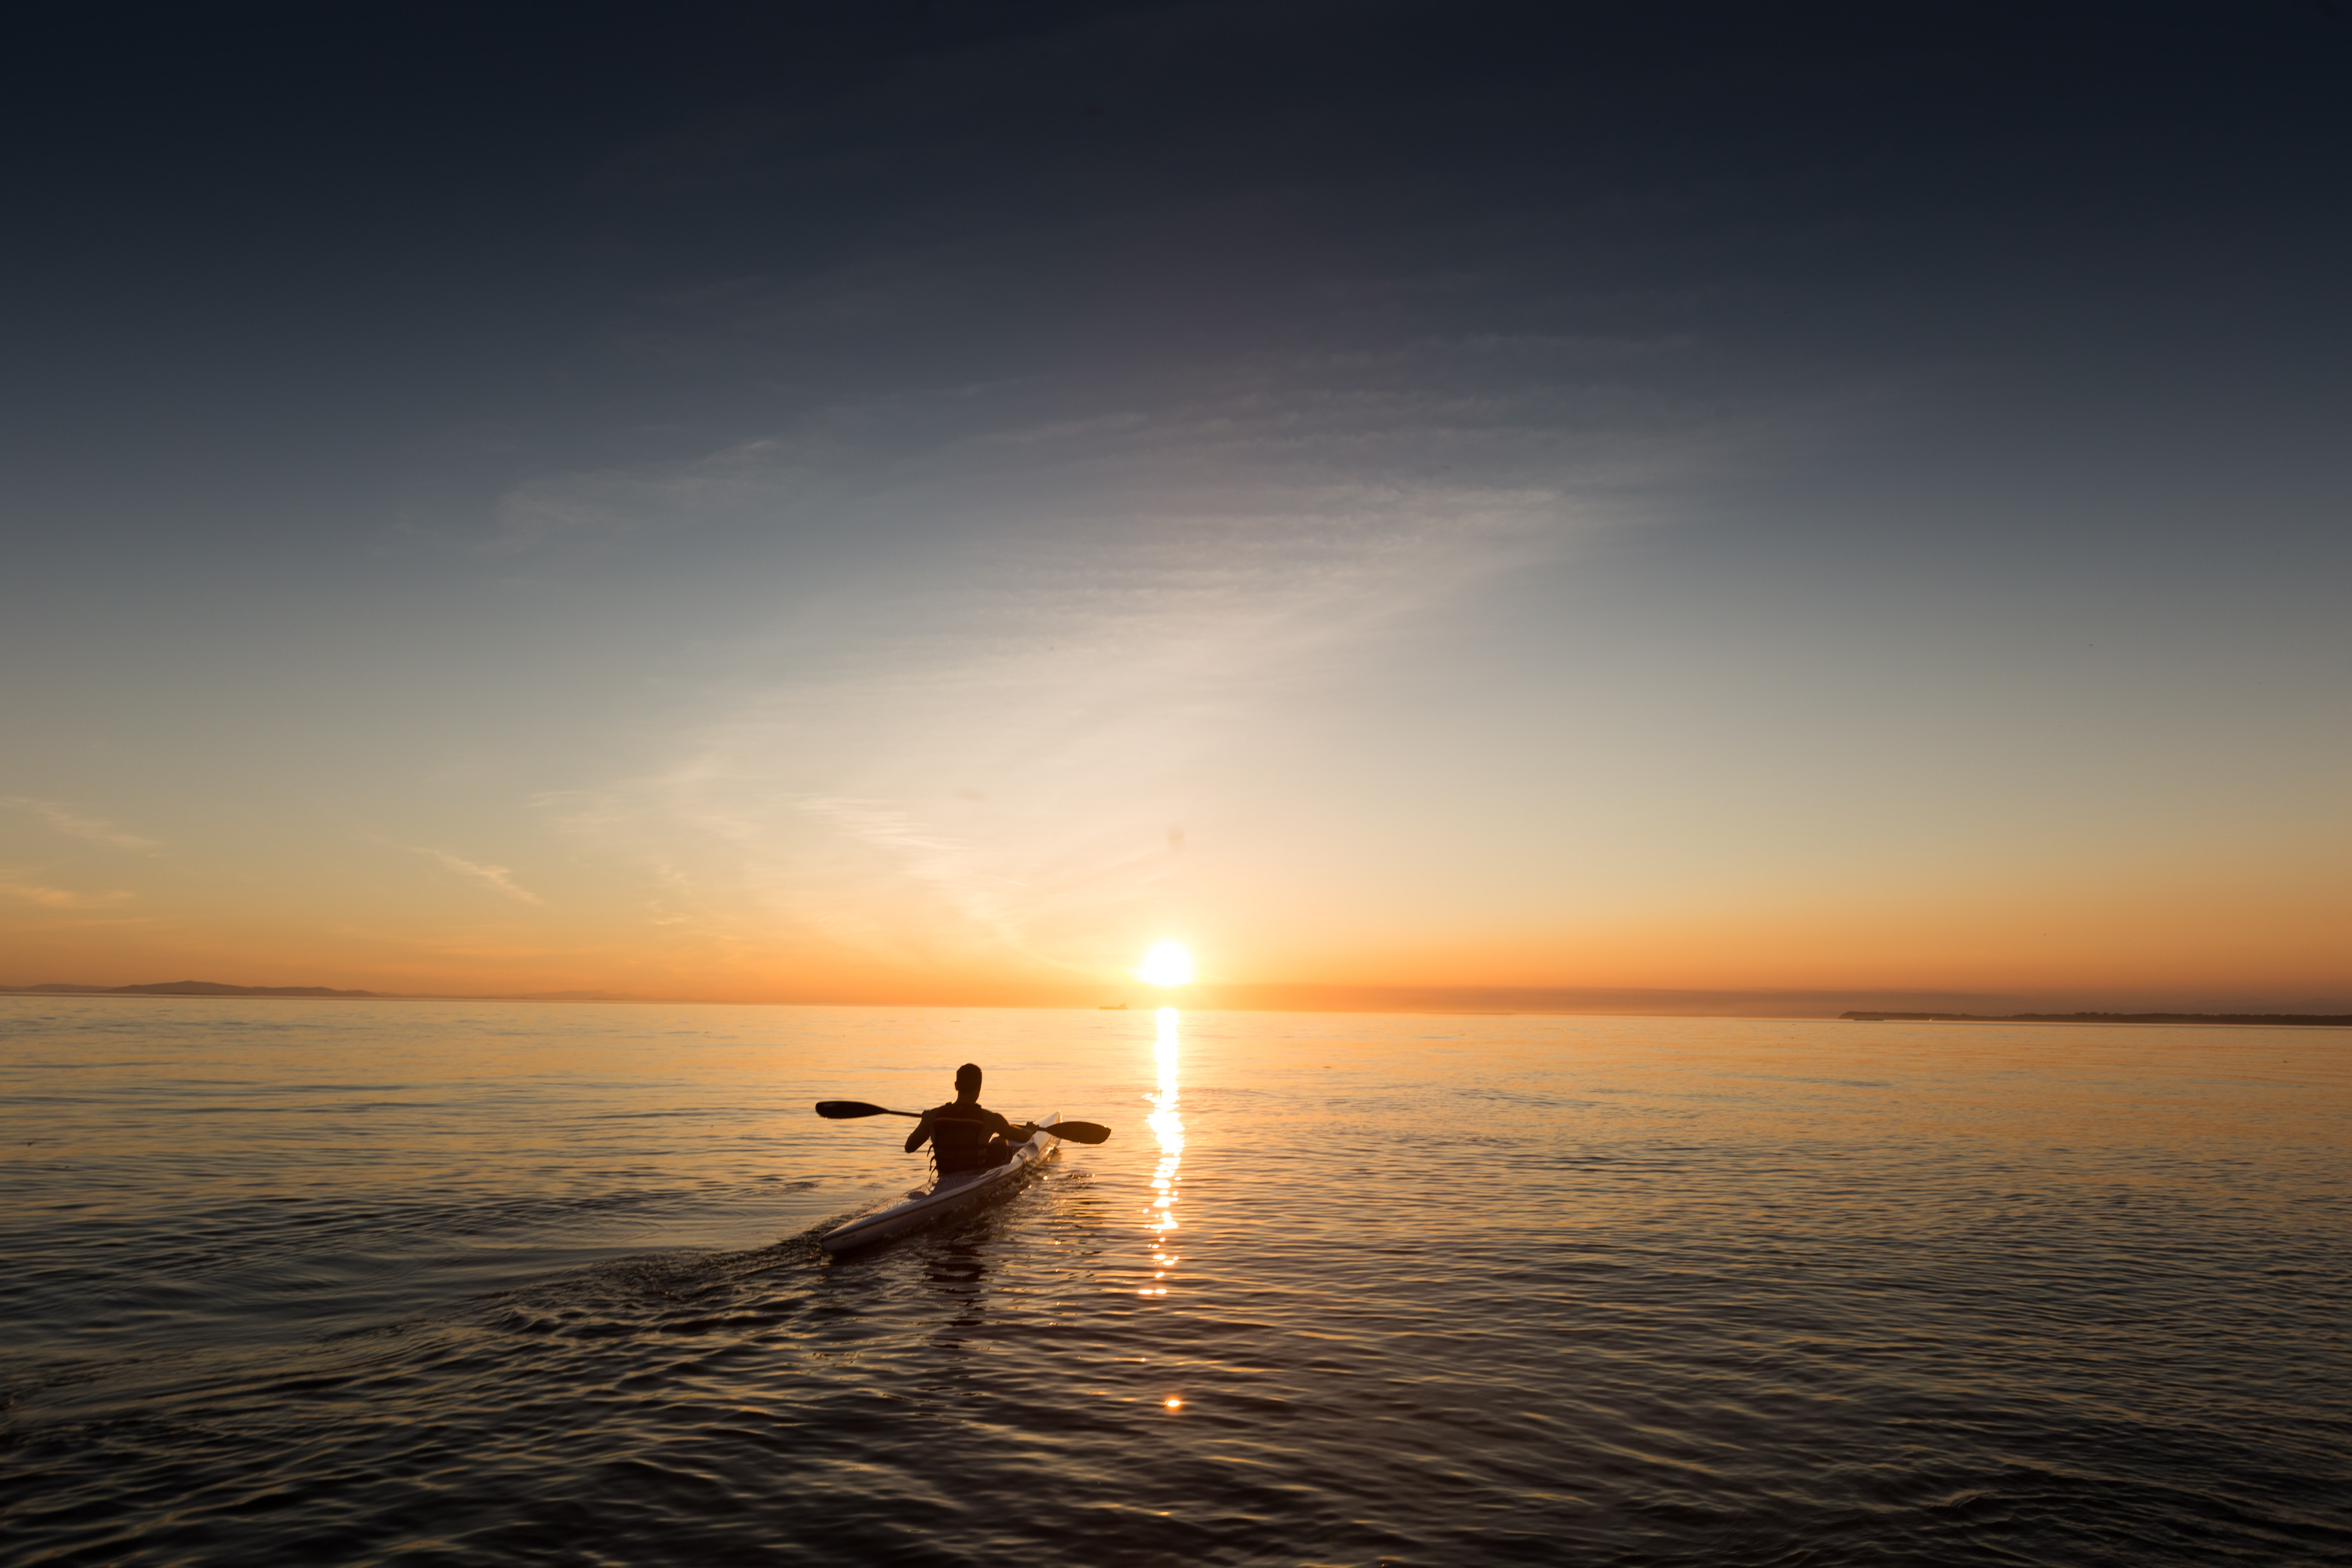 man riding kayak on water taken at sunset